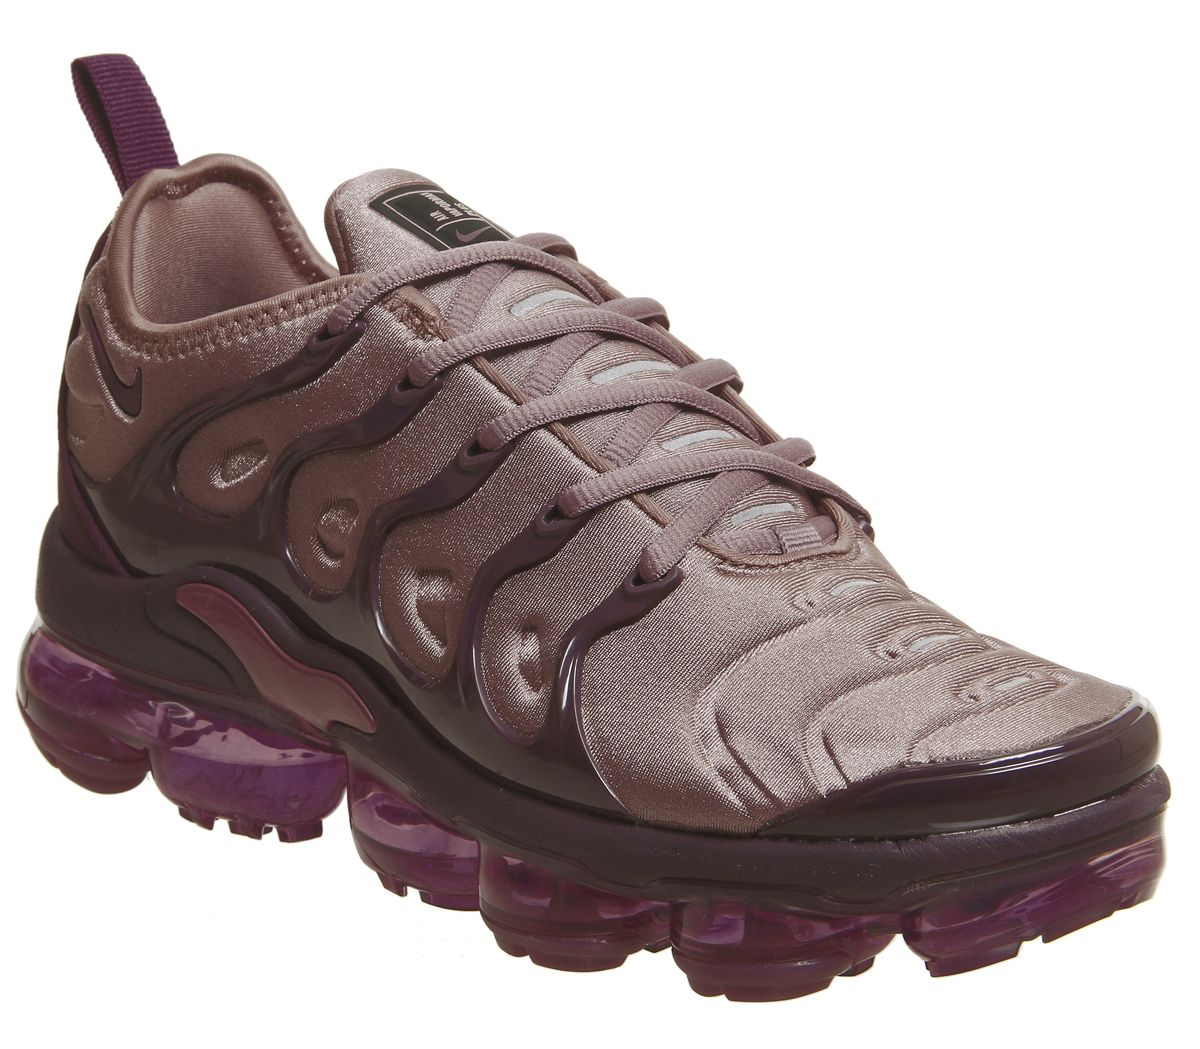 65e71129f24 Nike Vapormax Air Vapormax Plus Trainers Smokey Mauve Bordeaux ...